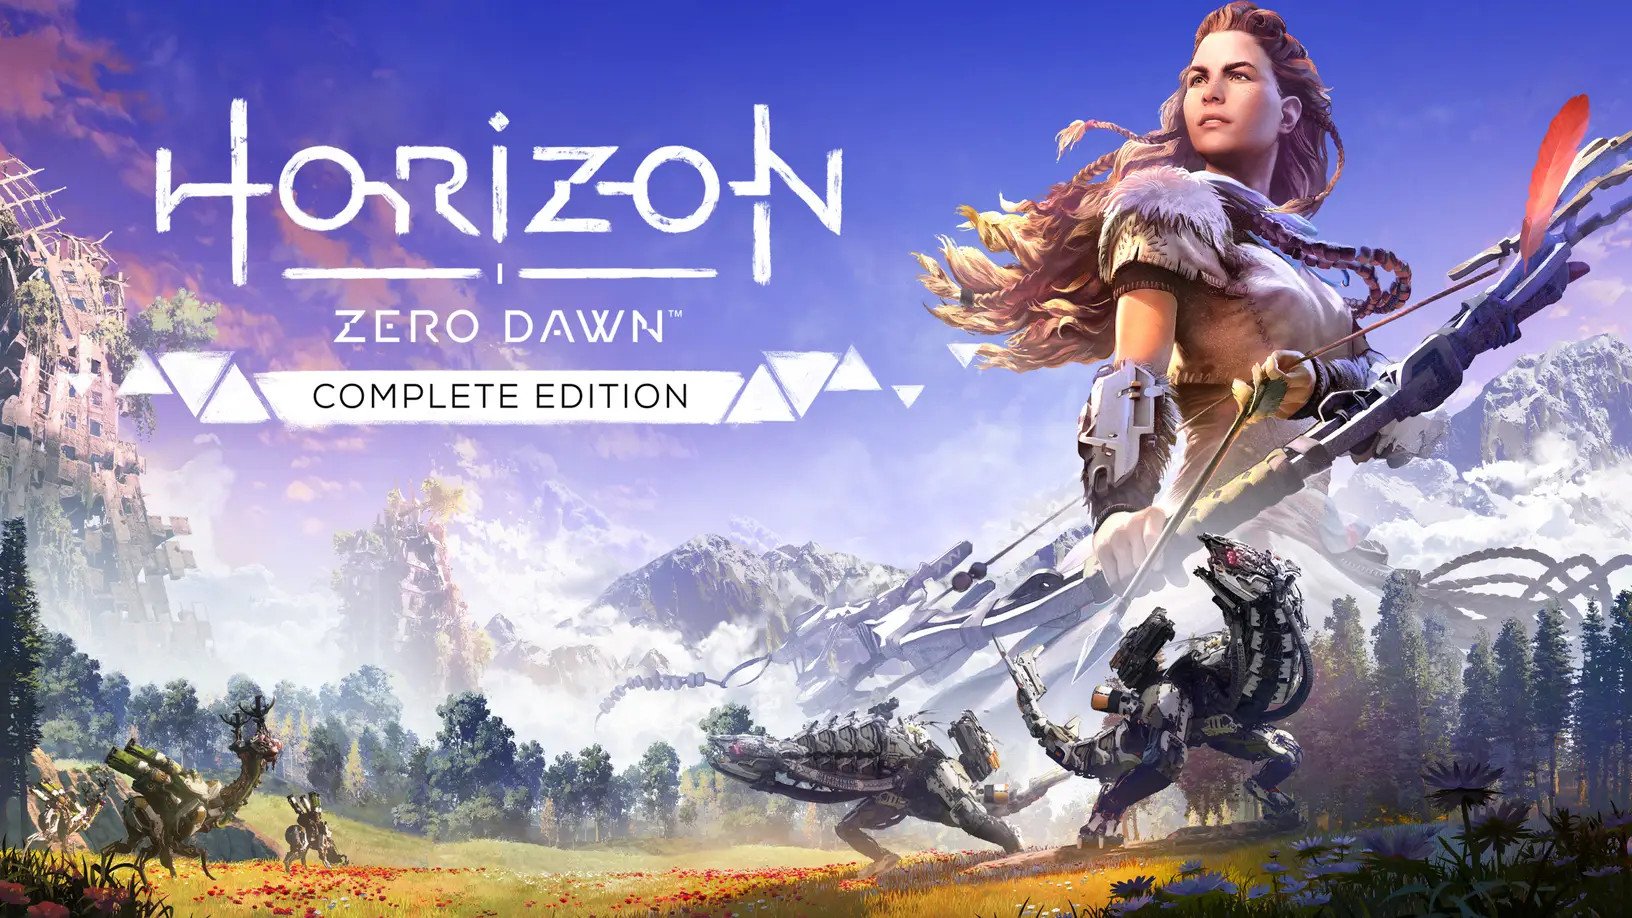 Text to the left reads Horizon Zero Dawn Complete Edition. Aloy, a red haired girl, is to the right and holding her boy. Mountains, forests, and a bright blue sky are featured in the background, with mechanical creatures dwelling.